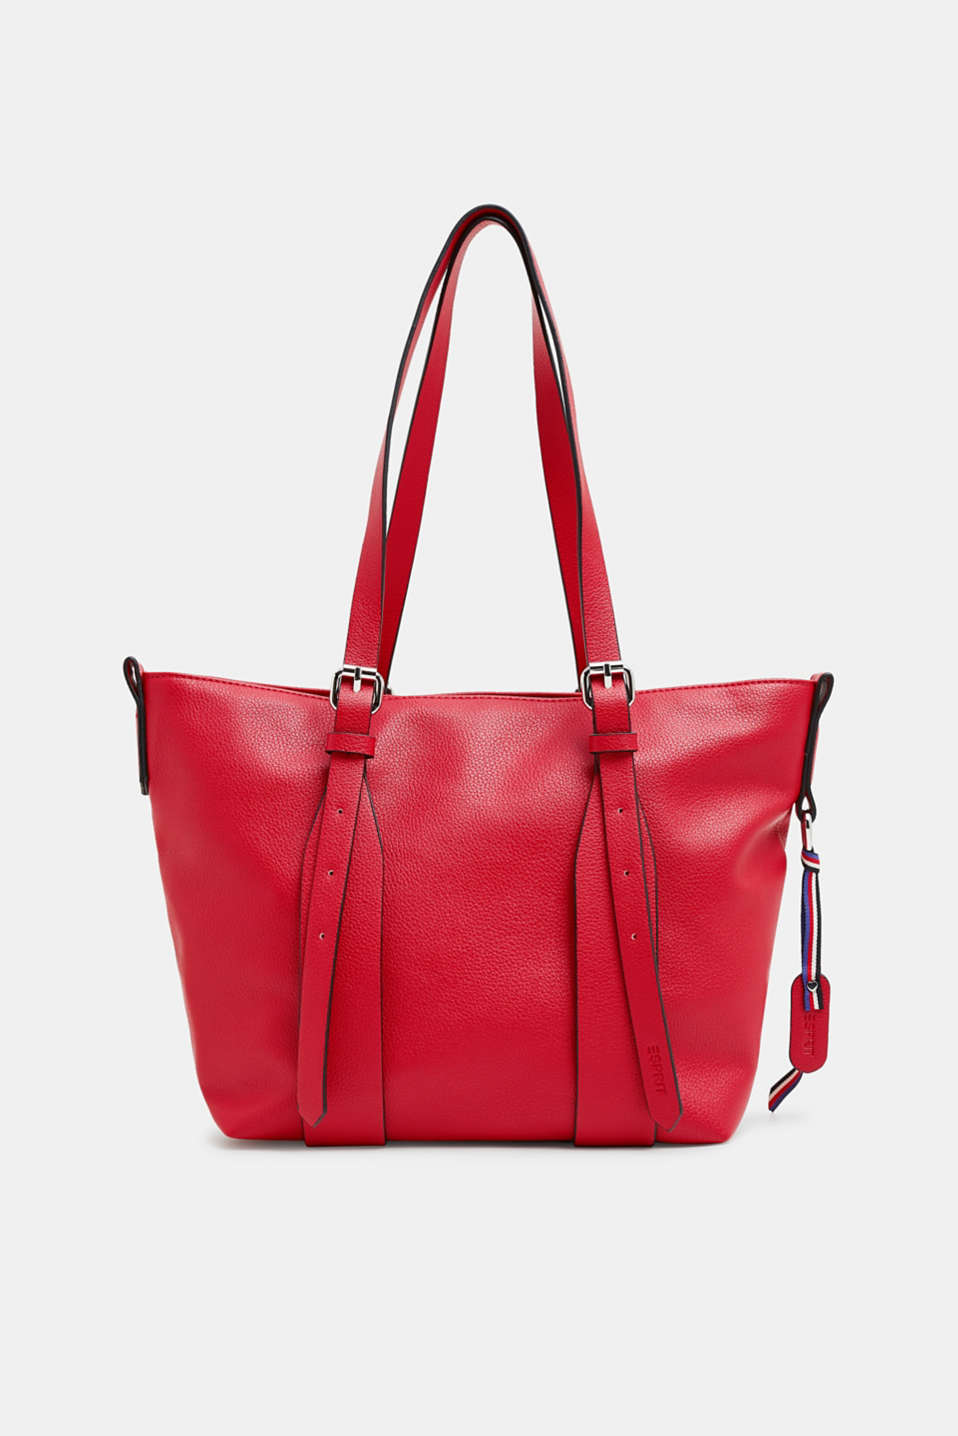 Esprit - Shoulder bag in faux leather with double straps